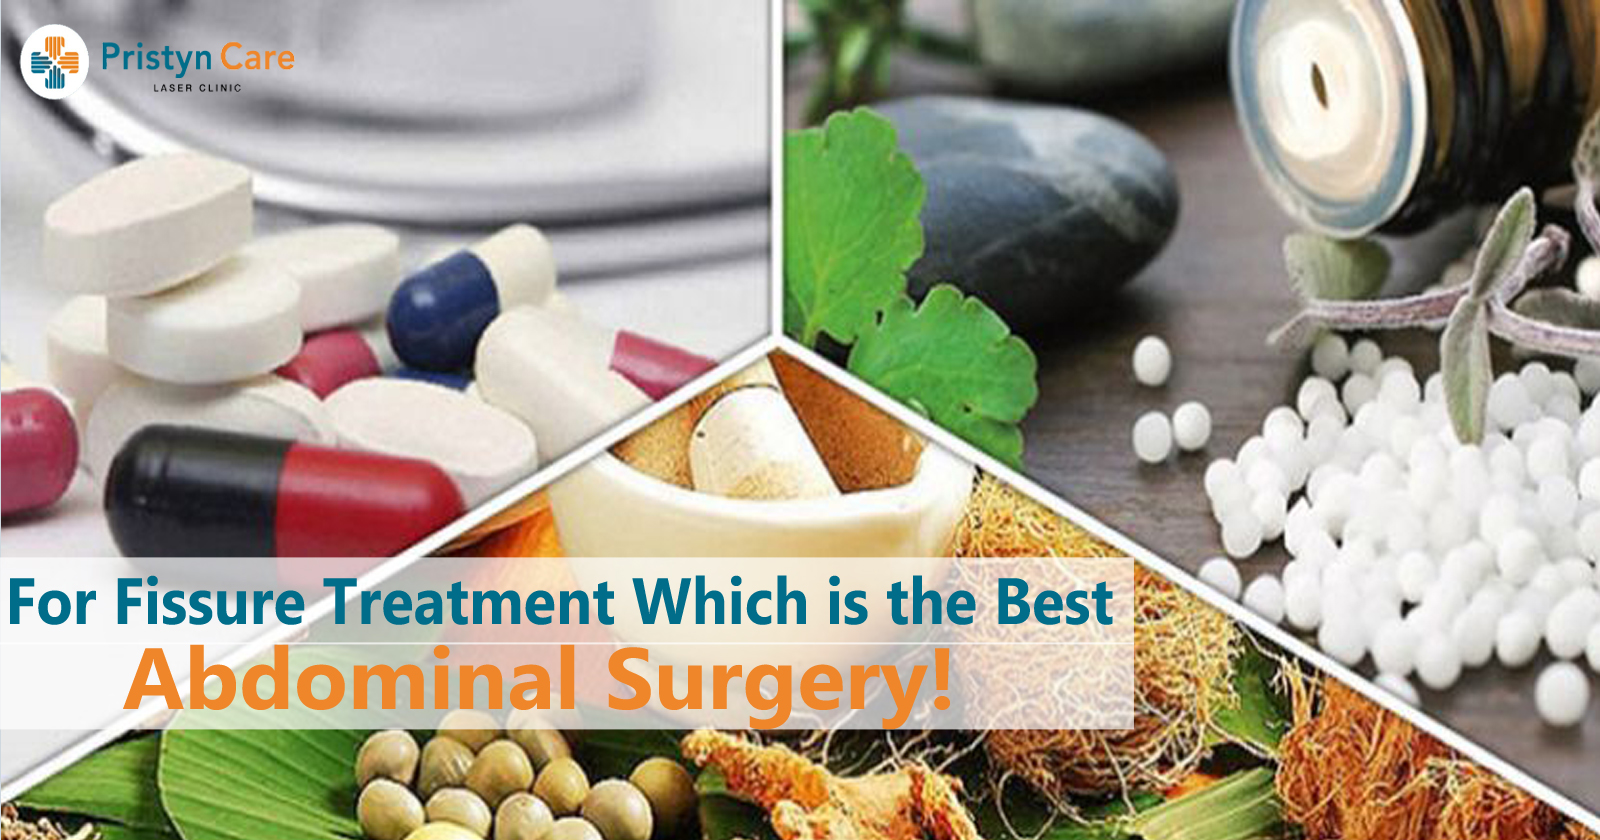 For Fissure Treatment Which is the Best- Ayurveda, Homeopathy, or Allopathy?